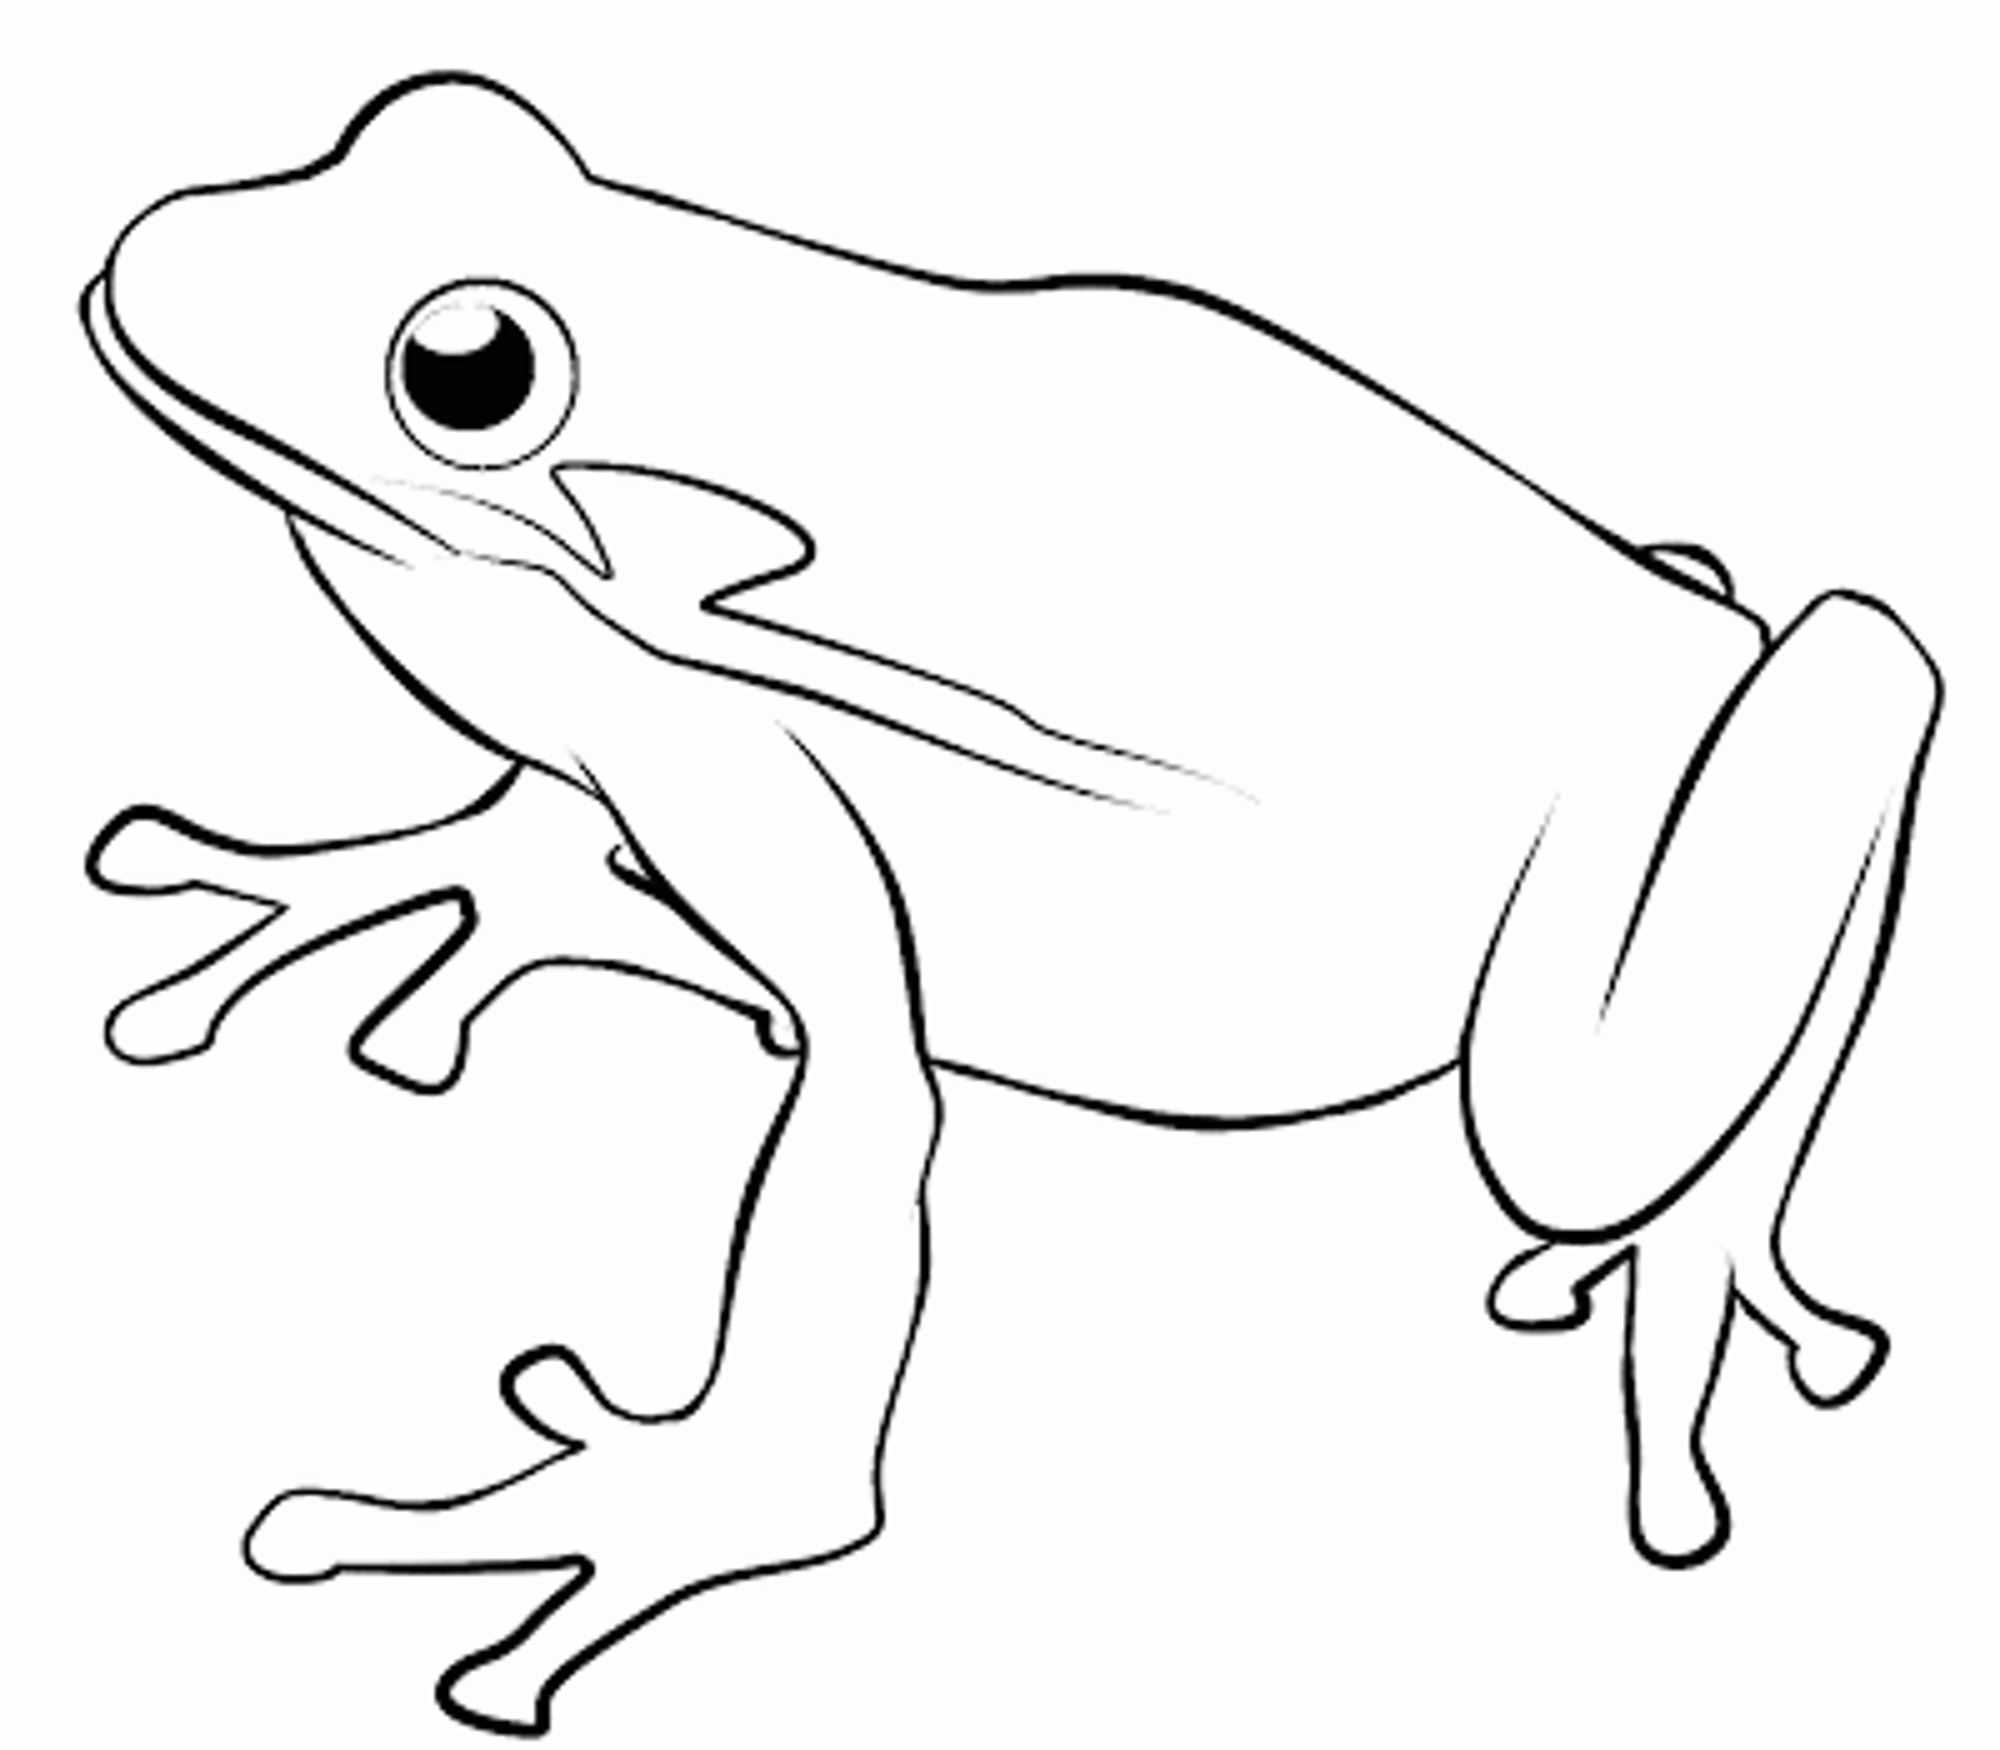 frog-coloring-pages-for-kids | | BestAppsForKids.com